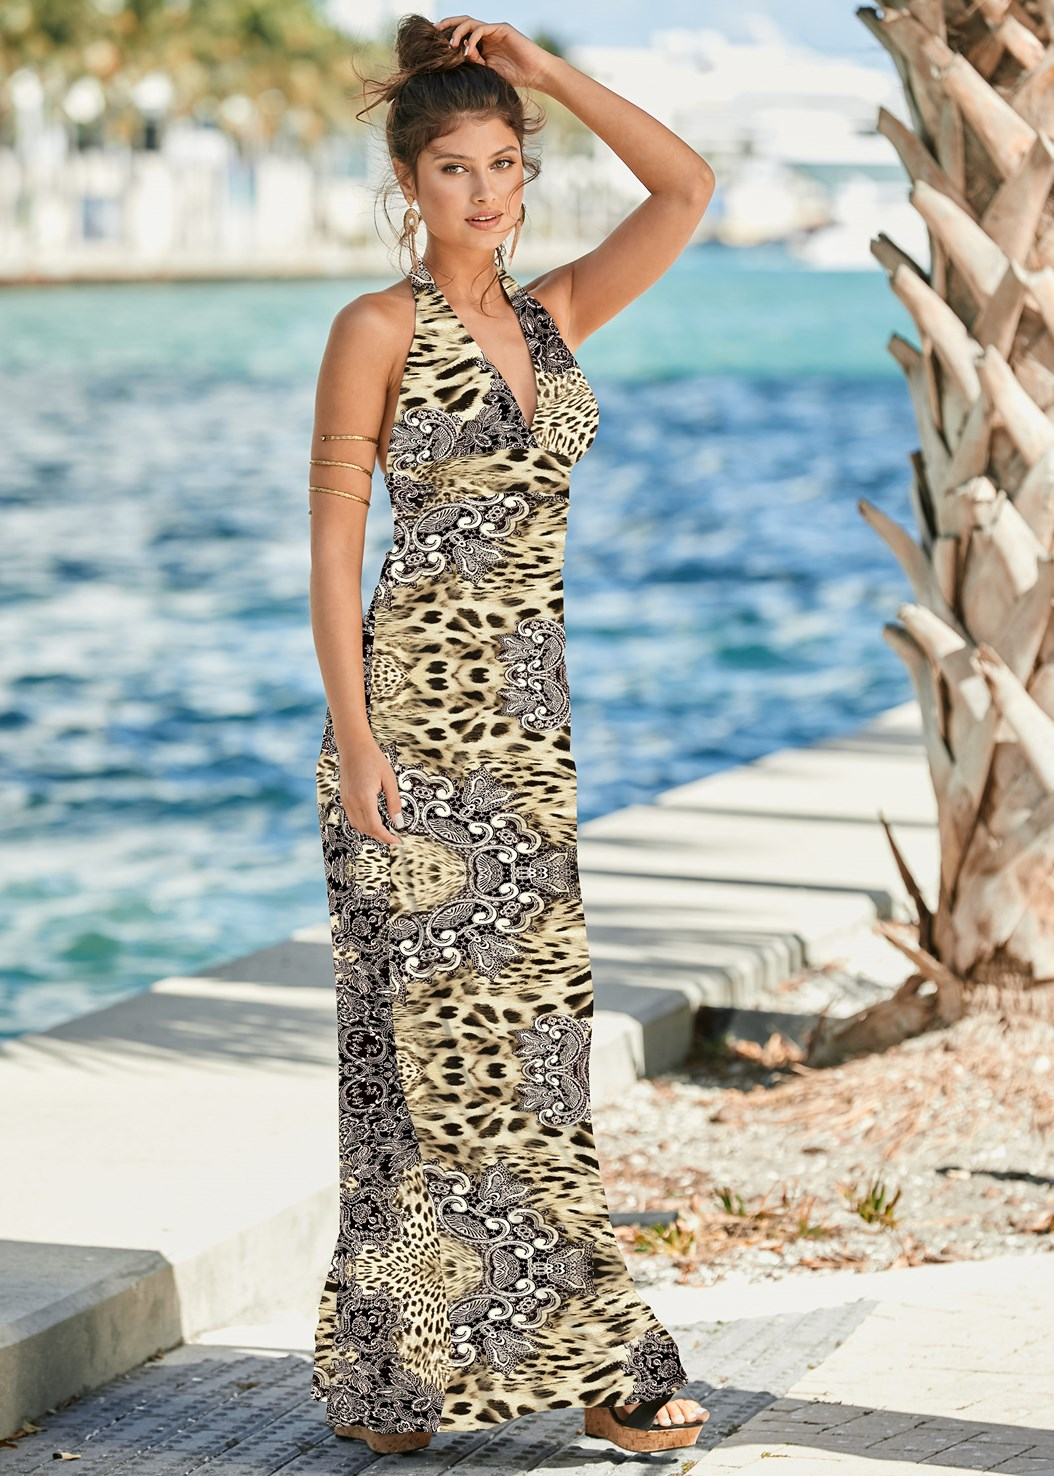 Leopard Halter Maxi Dress,Jewel Toe Loop Lucite Sandal,Tortoise Fringe Earrings